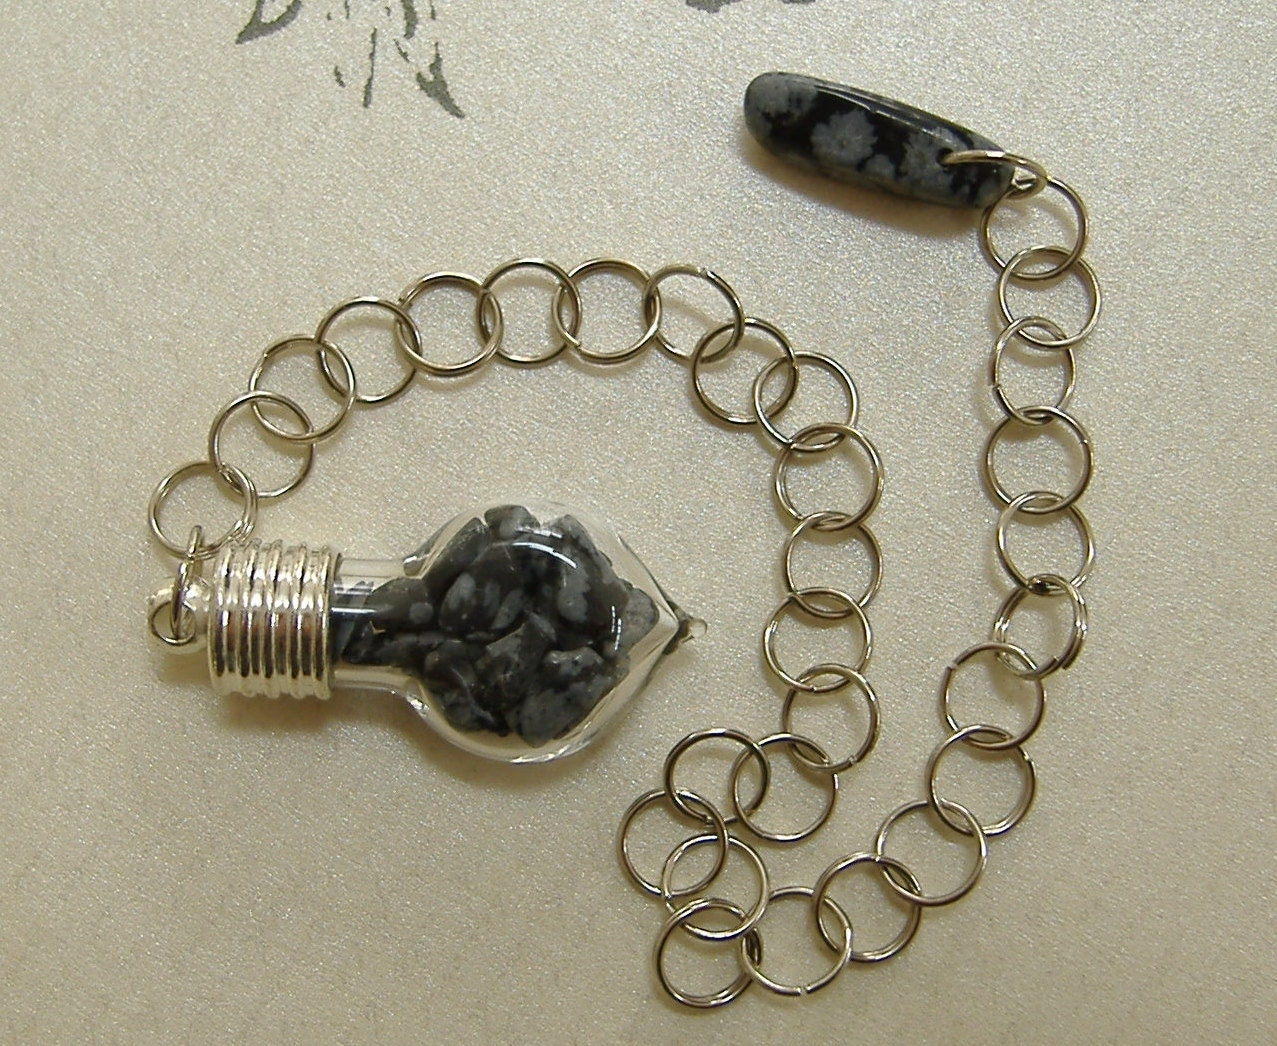 Snowflake Obsidian Dowsing Pendulum - Stone of Scrying, Purity, Stone of Inner Self,  Scorpio Power Stone, Root and Sacral Chakra,